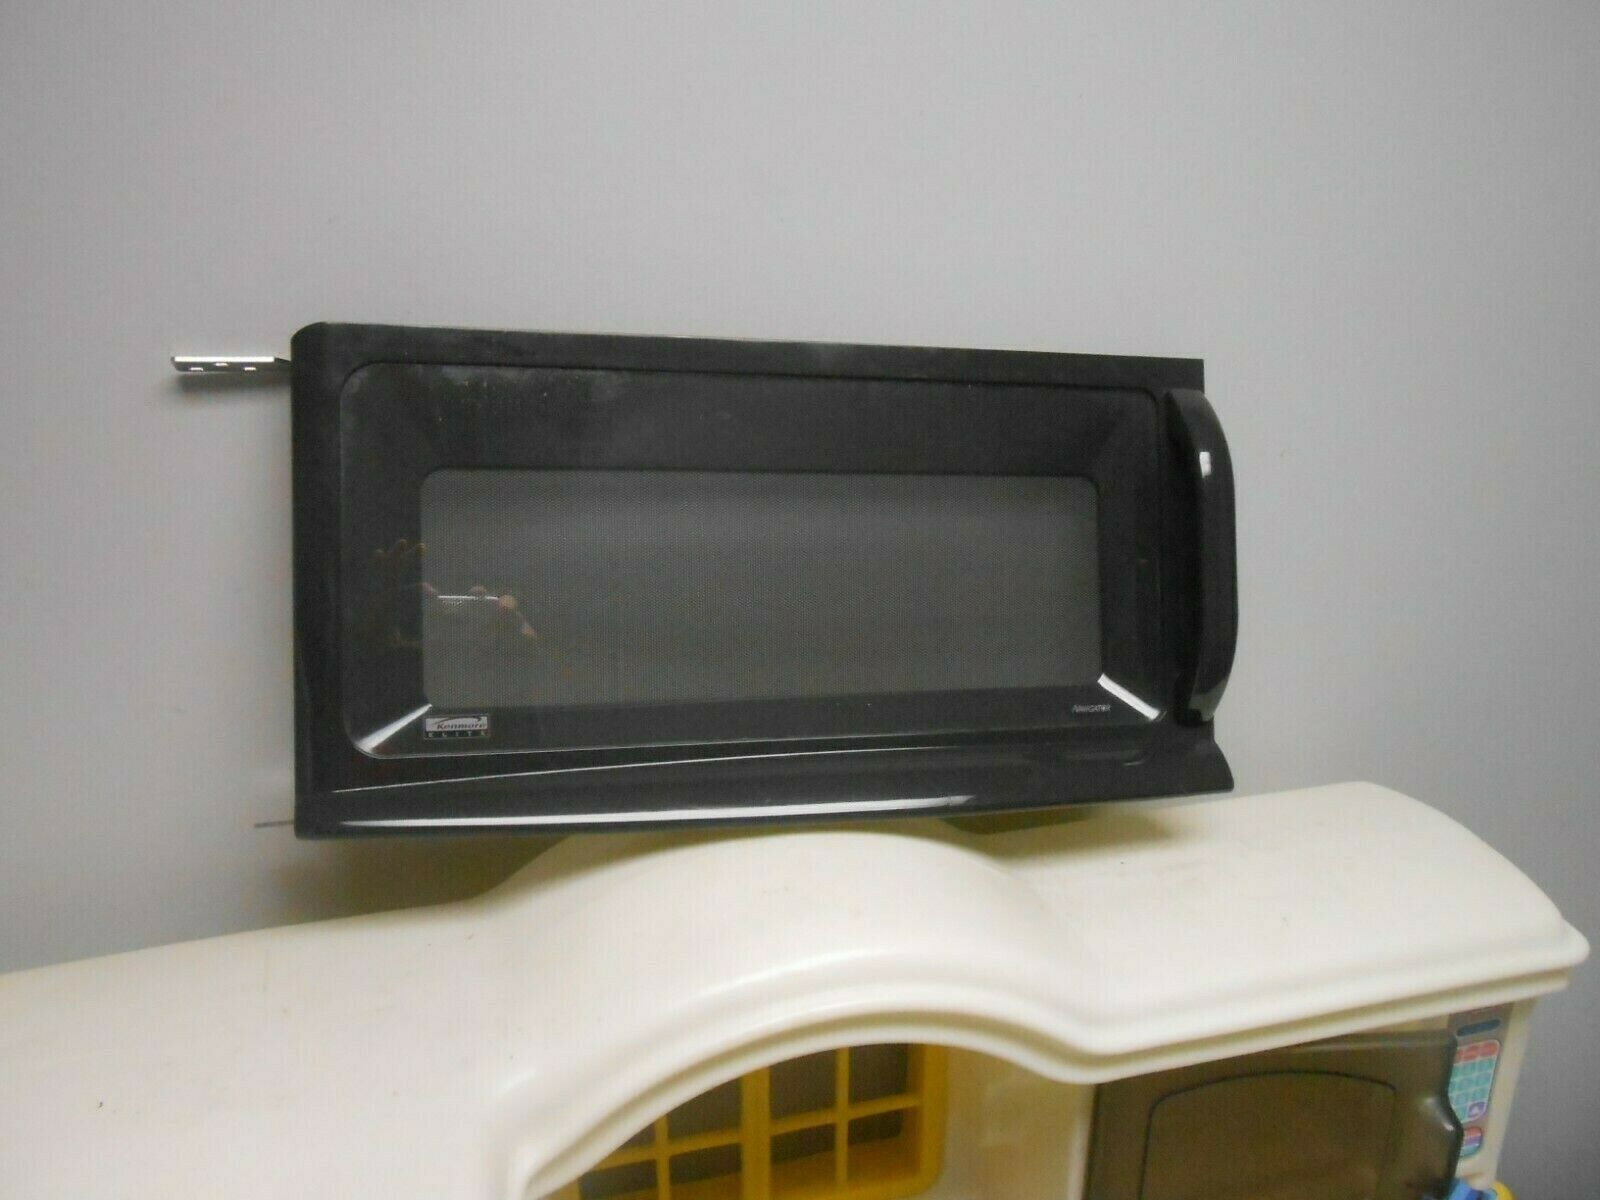 LG Kenmore Microwave Oven Glass Lens Cover 4890W1A045A 4890W1A045B